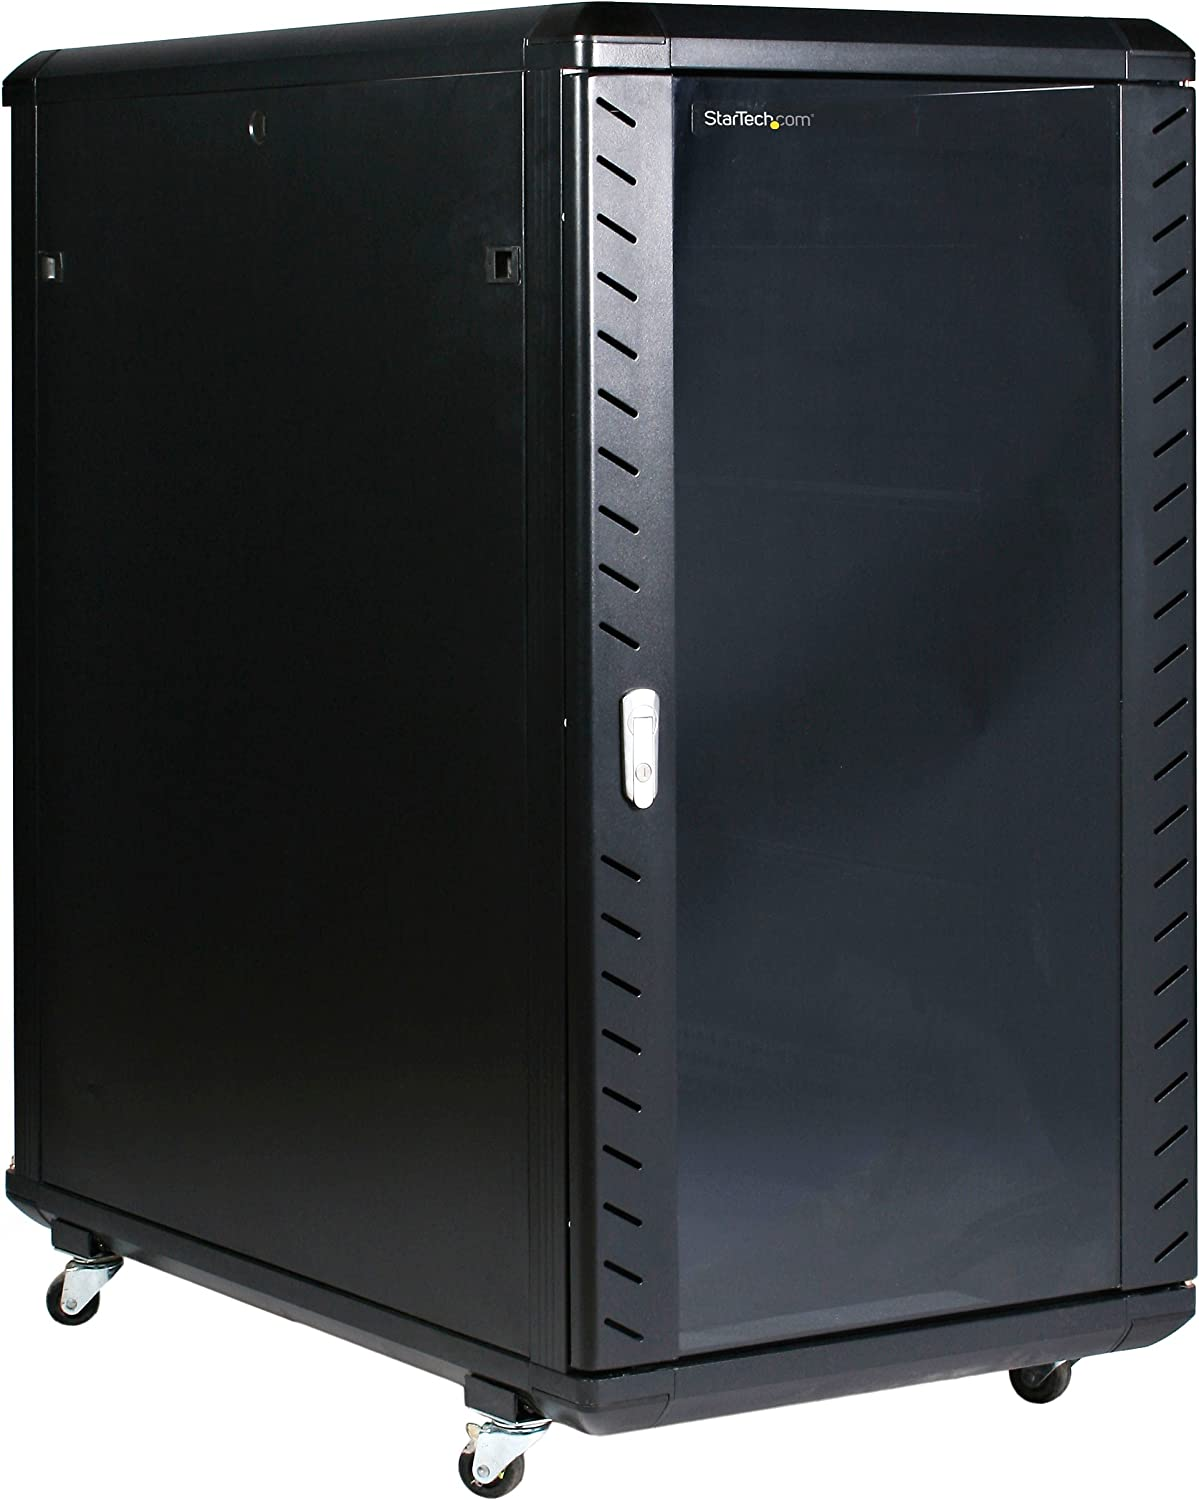 "StarTech.com 22U Server Rack Cabinet with secure locking door - 4 Post Adjustable Depth (5.5"" to 28.7"") - 1768 lb capacity - 19 inch Portable Network Equipment Enclosure on wheels/casters (RK2236BKF)"